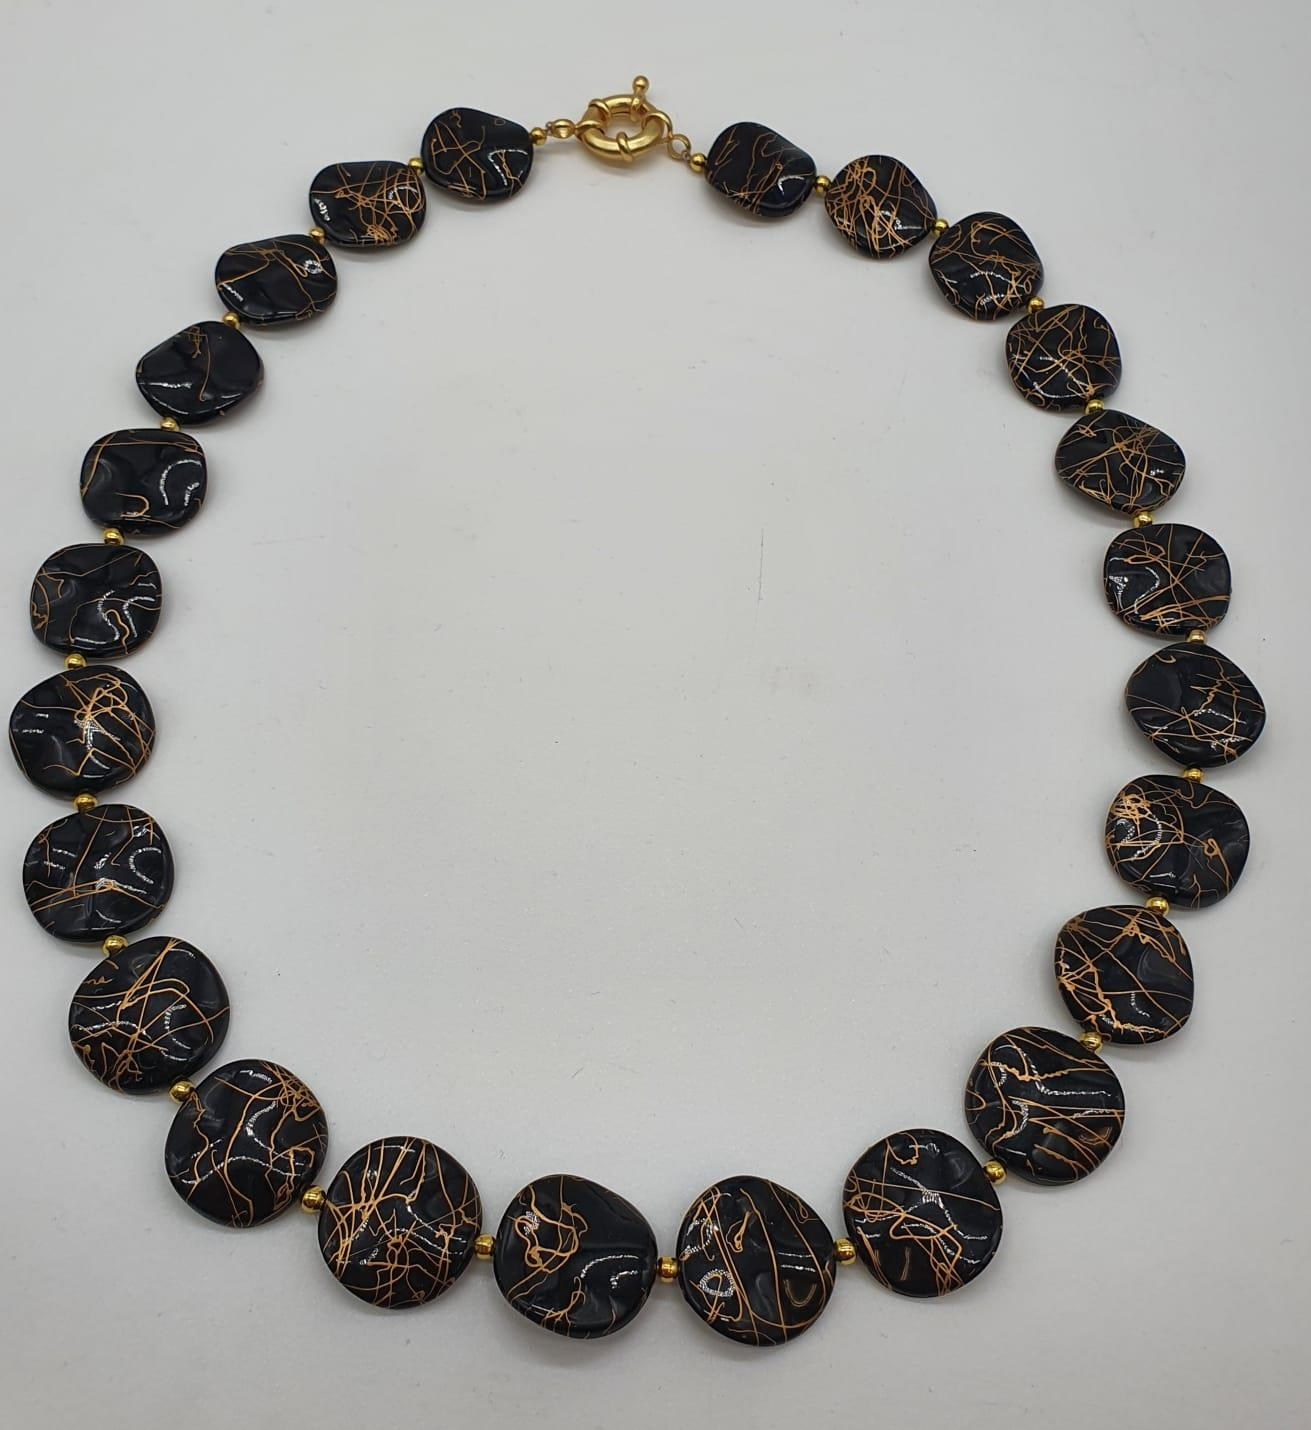 A 60?s black and gold coloured necklace, bracelet and earrings set in a presentation box. Necklace - Image 2 of 5